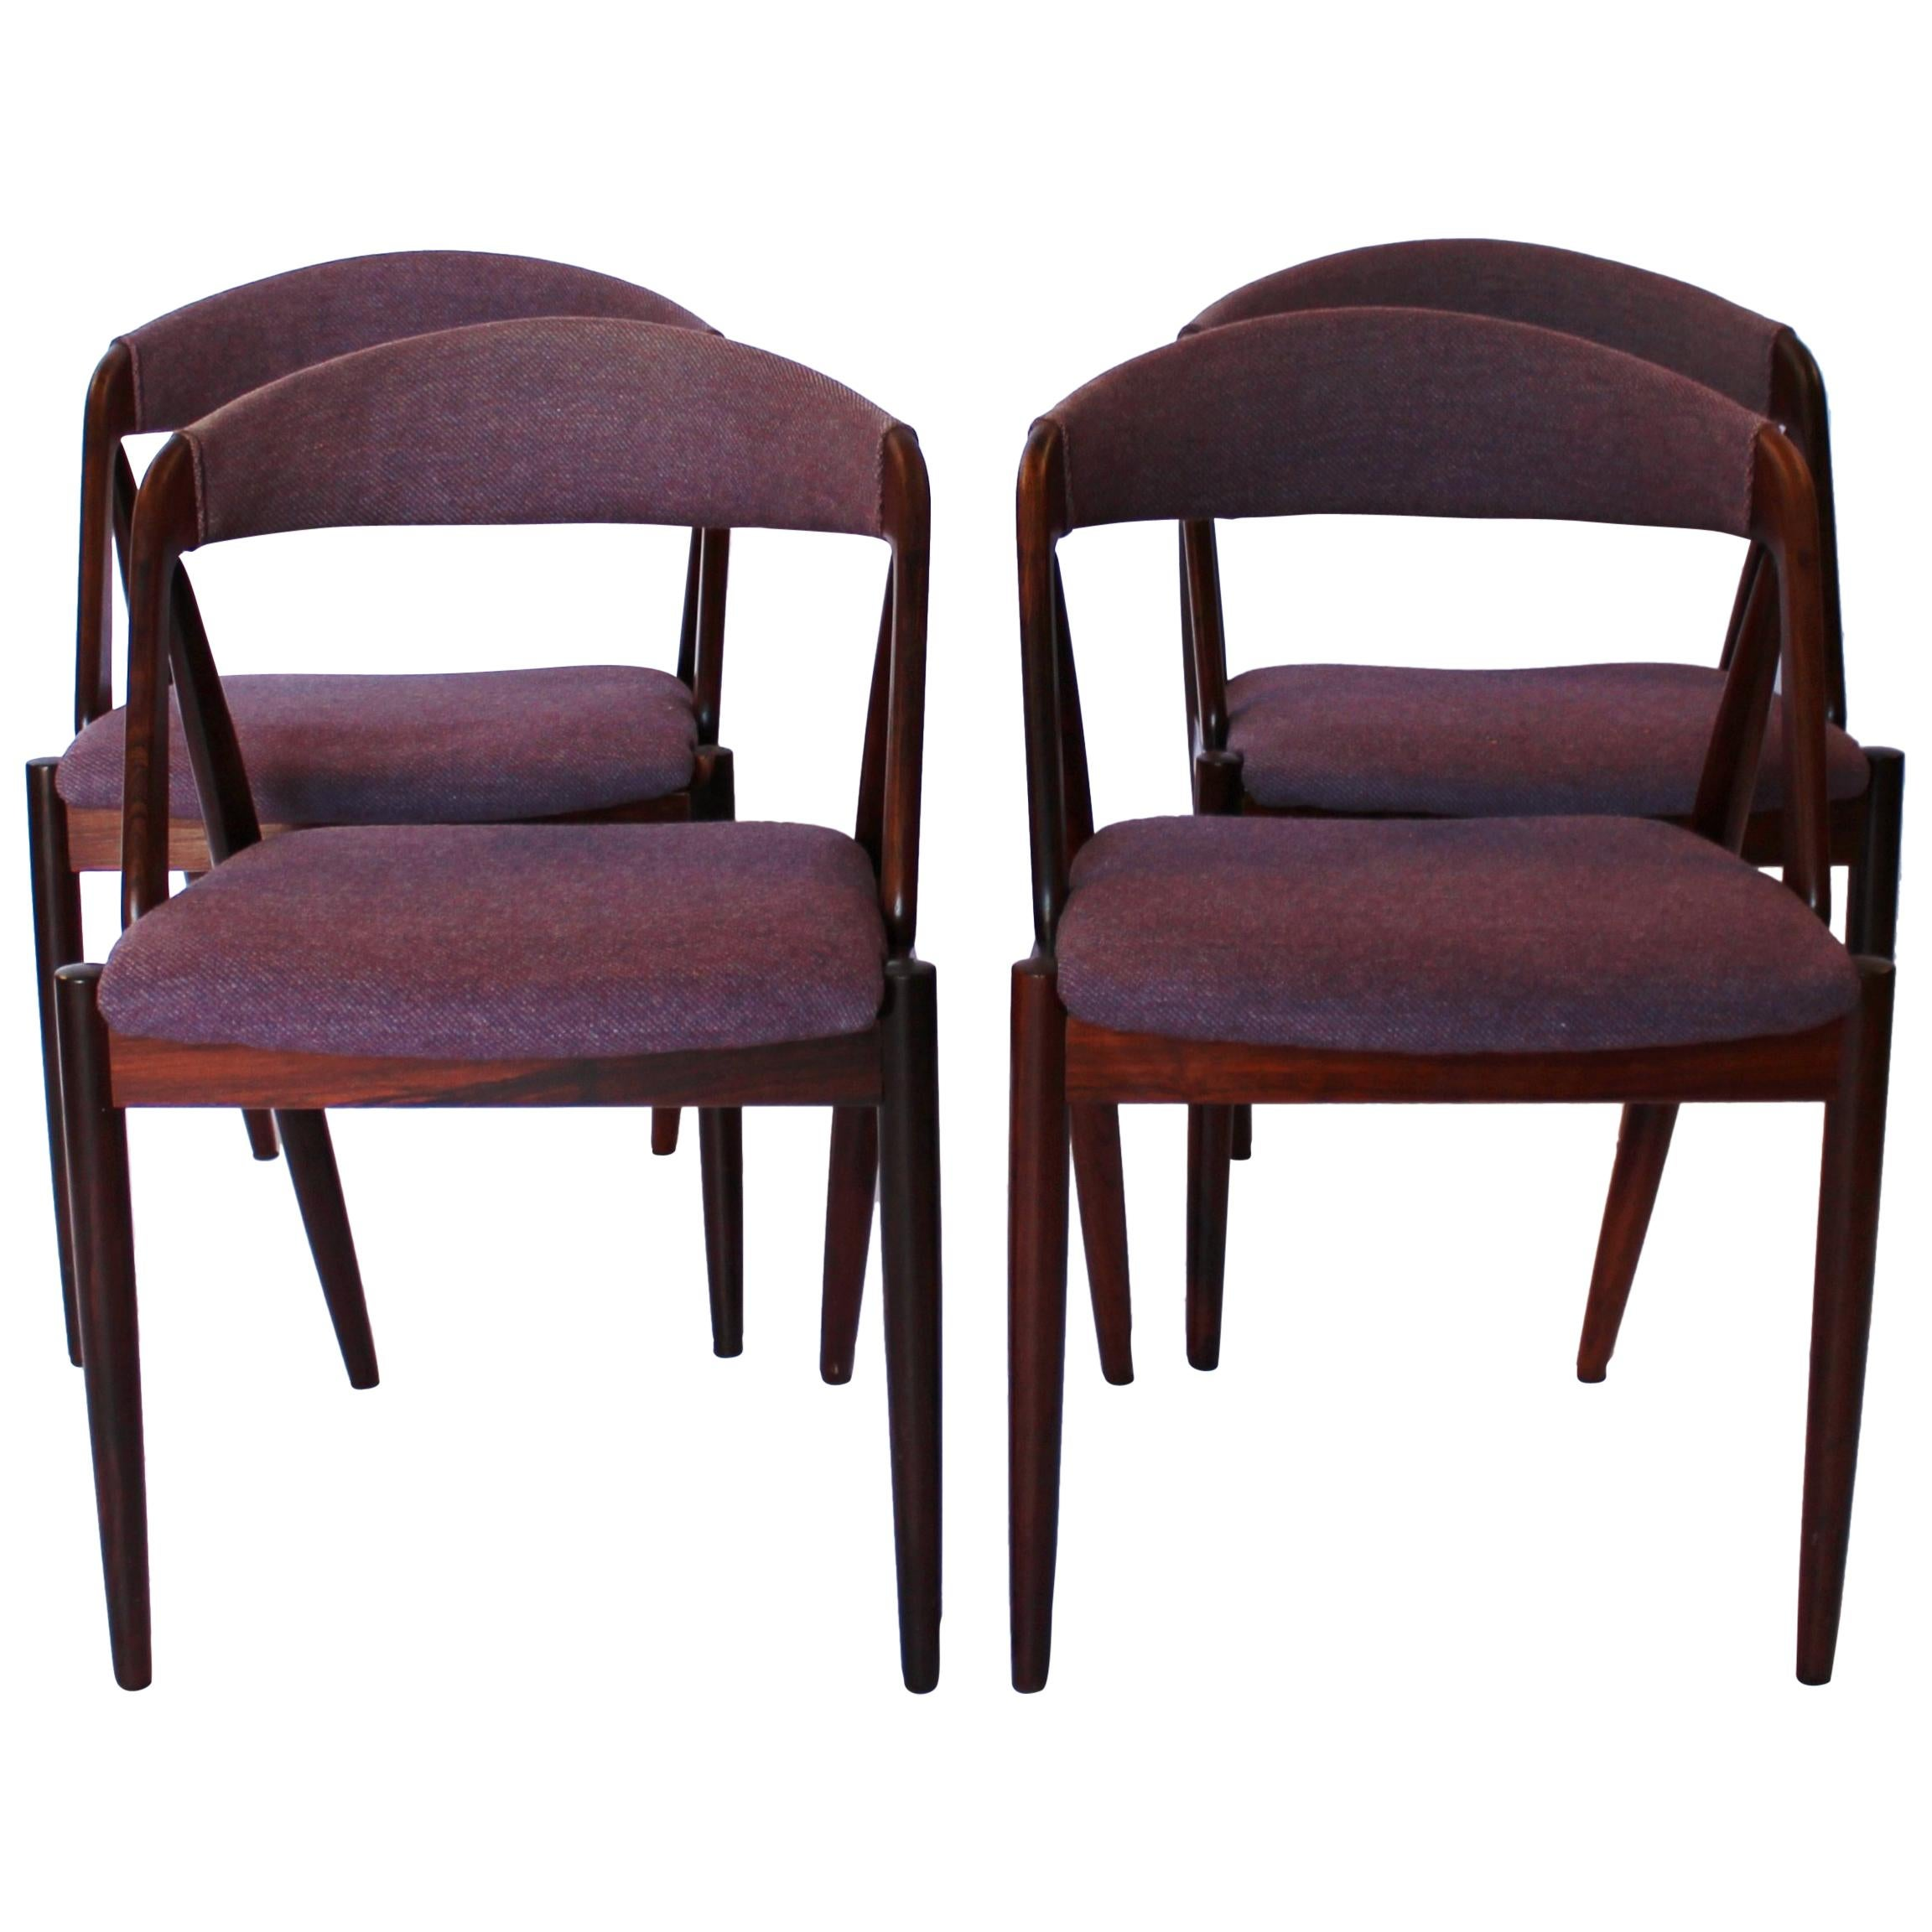 Set of Four Dining Chairs, Model 31, Kai Kristiansen and Schou Andersen, 1960s